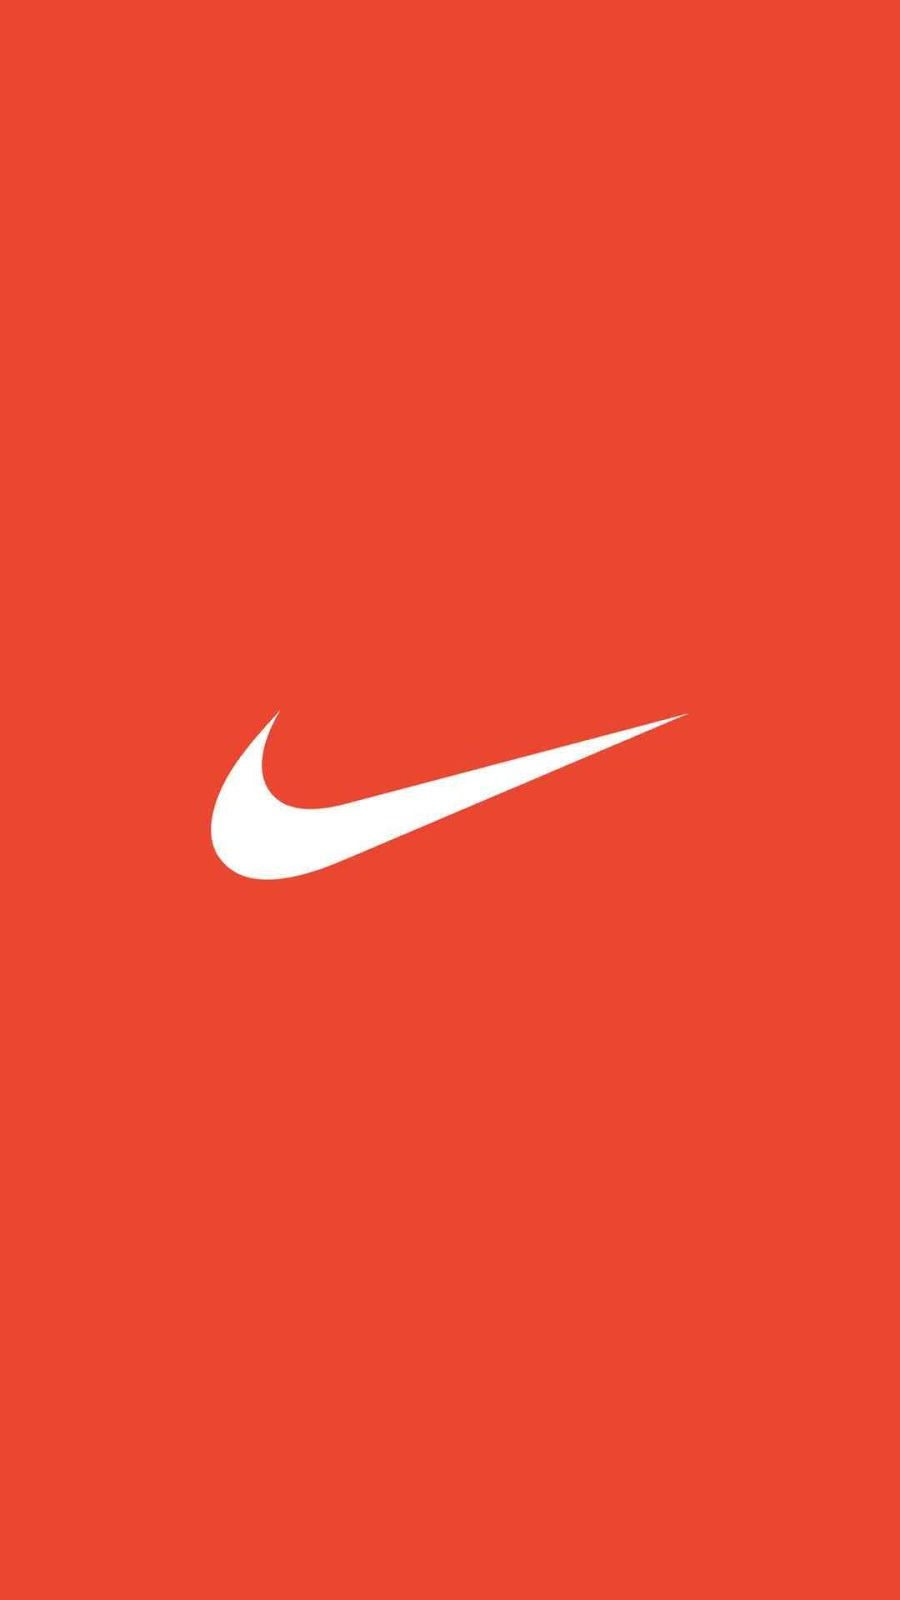 Nike Logo Hd Wallpapers For Iphone X Iphone Xr Iphone 11 Part 2 Andriblog001 In 2020 Nike Wallpaper Nike Wallpaper Iphone Nike Logo Wallpapers